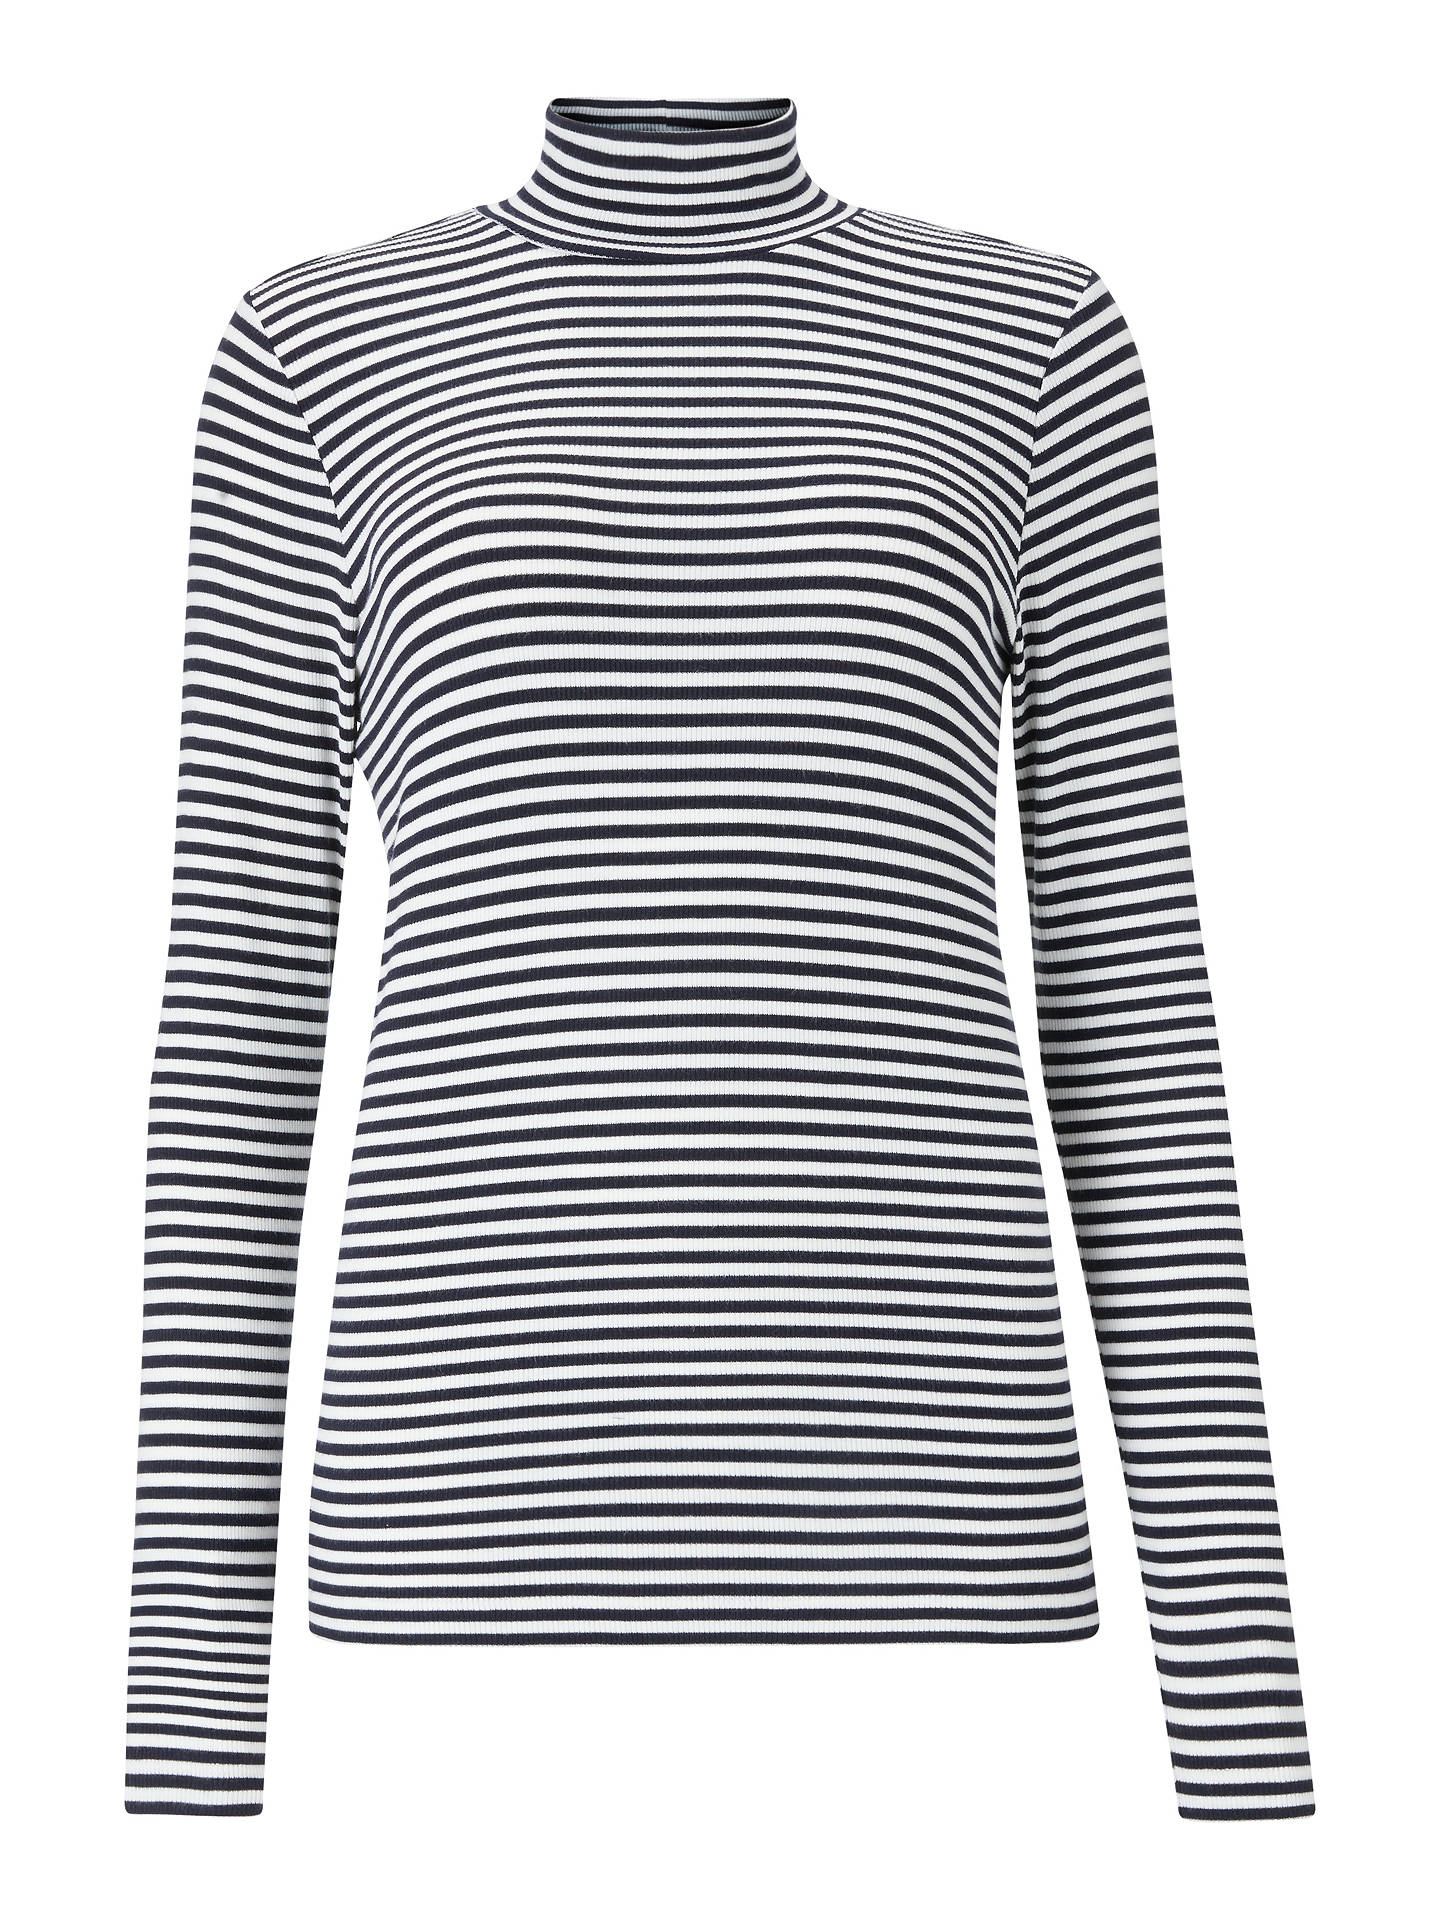 Buy Collection WEEKEND by John Lewis Stripe Funnel Neck Ribbed Top, Navy/Ivory, 8 Online at johnlewis.com